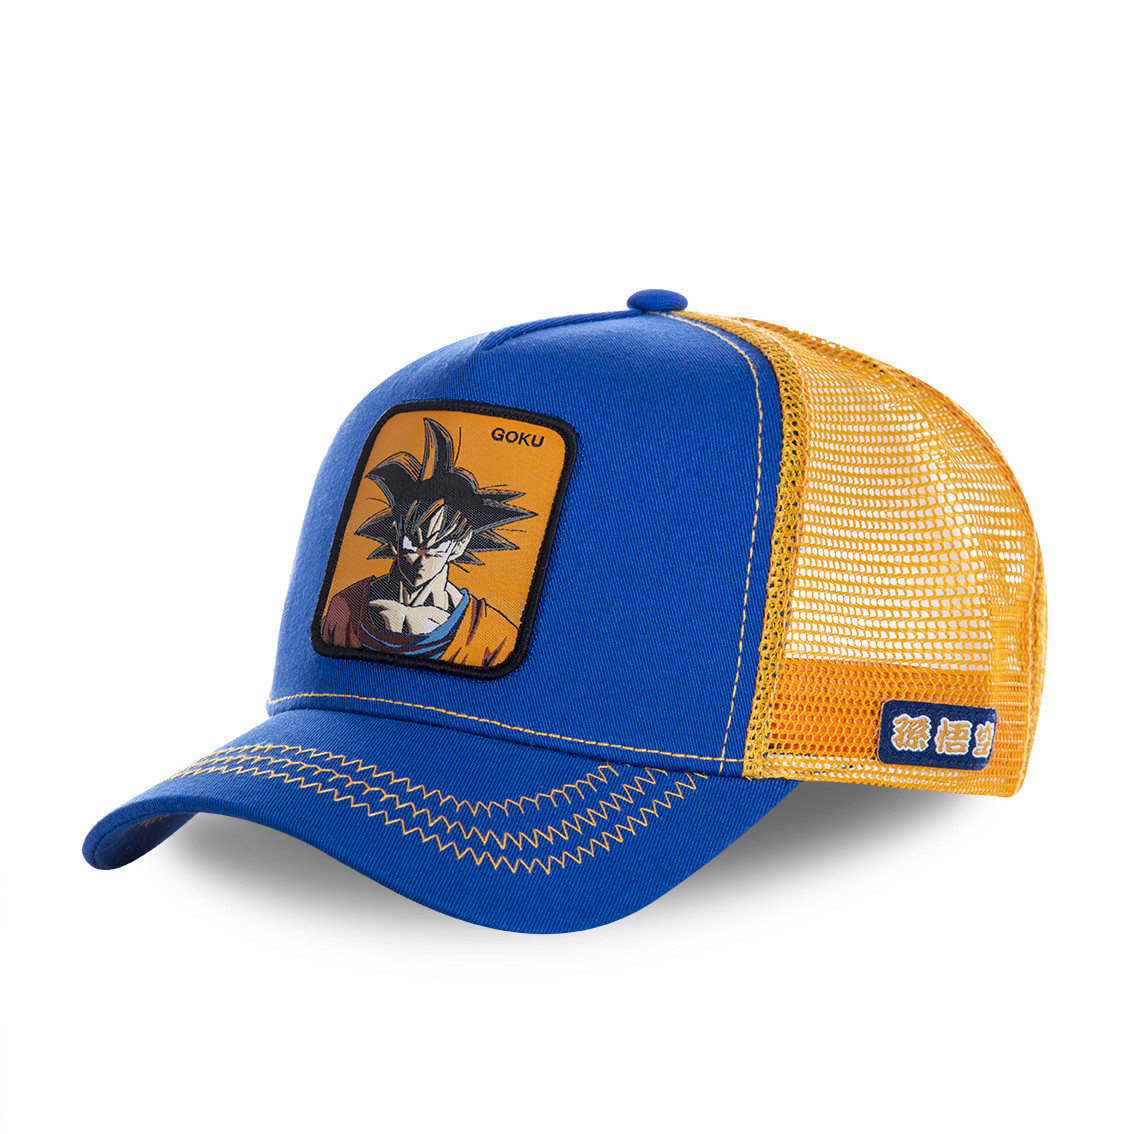 Casquette capslab dragon ball z goku bleu et orange (photo)